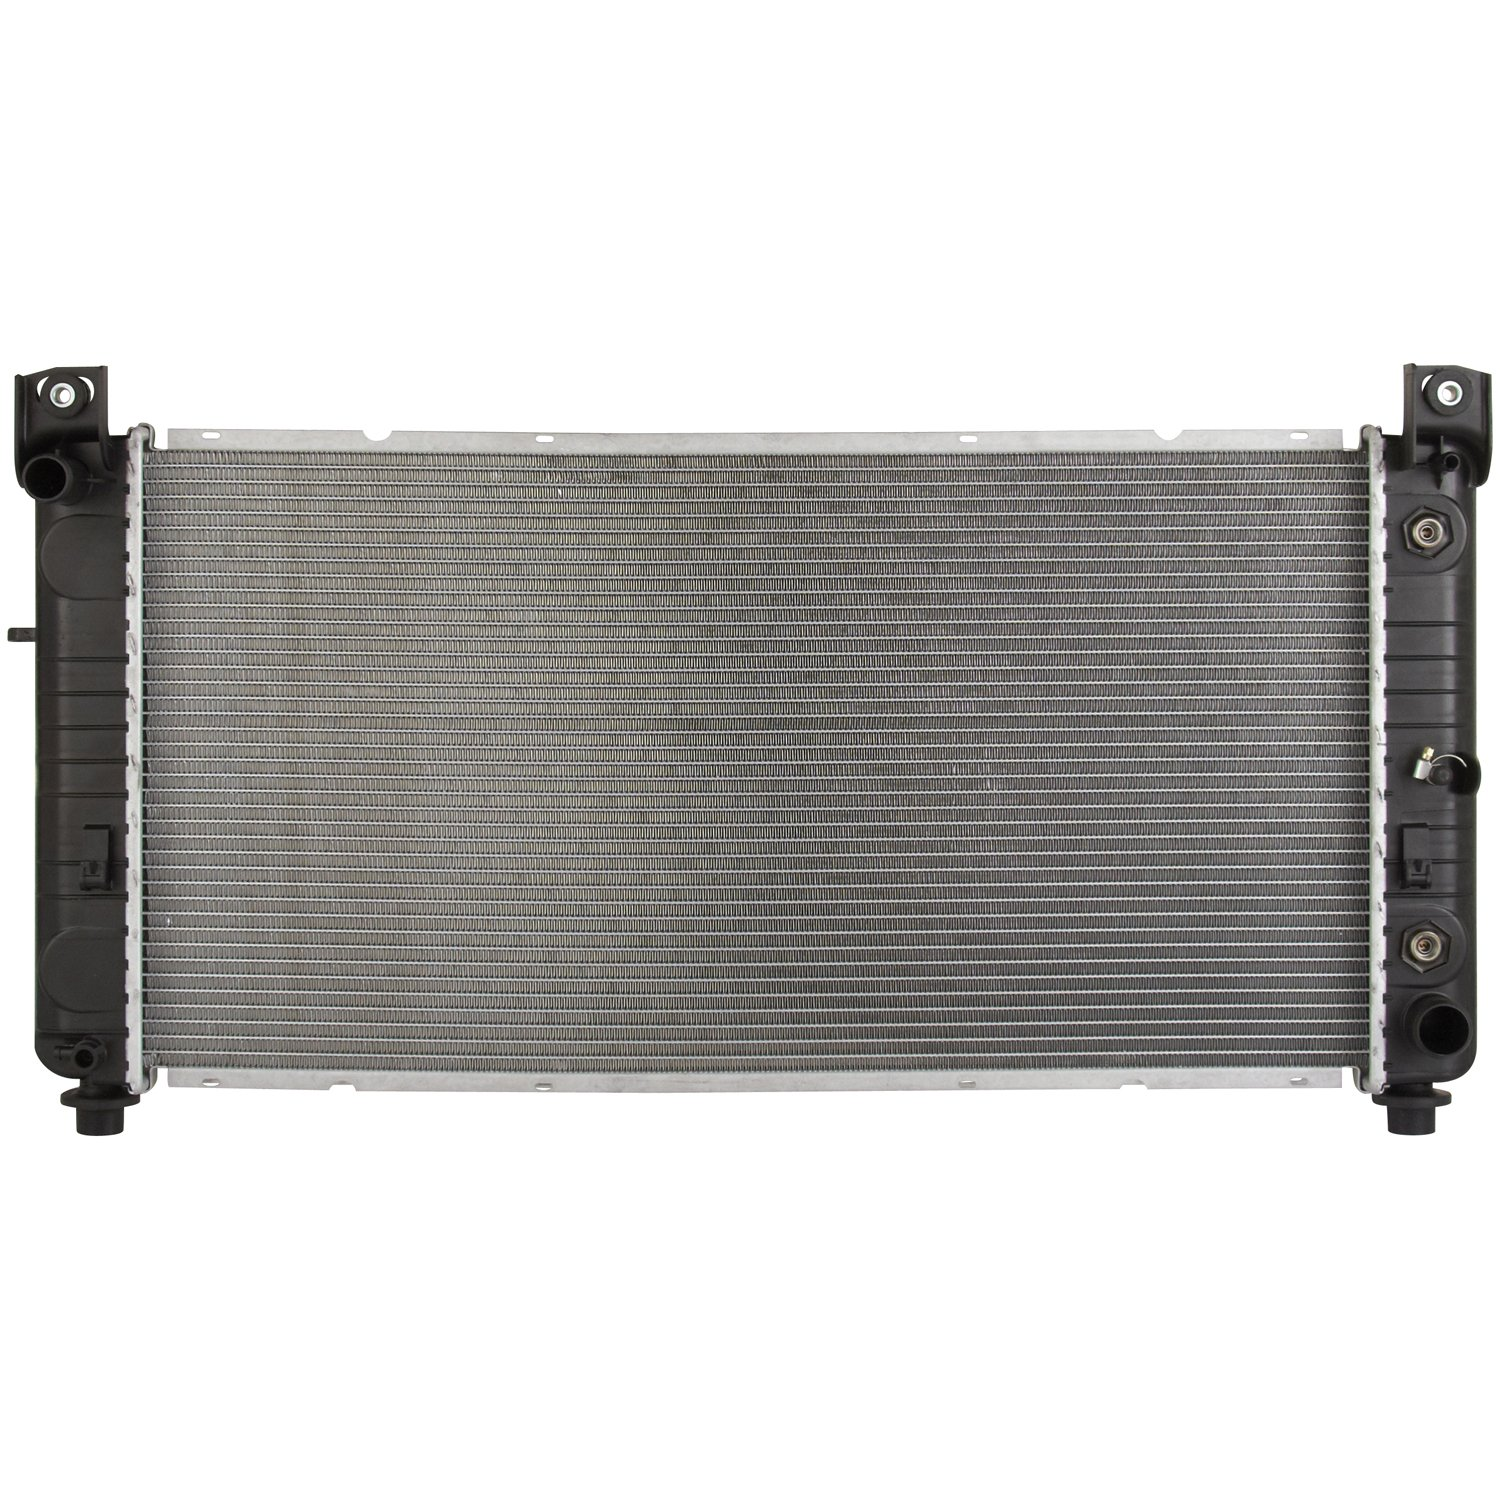 Spectra Premium CU2423 Complete Radiator for General Motors by Spectra Premium